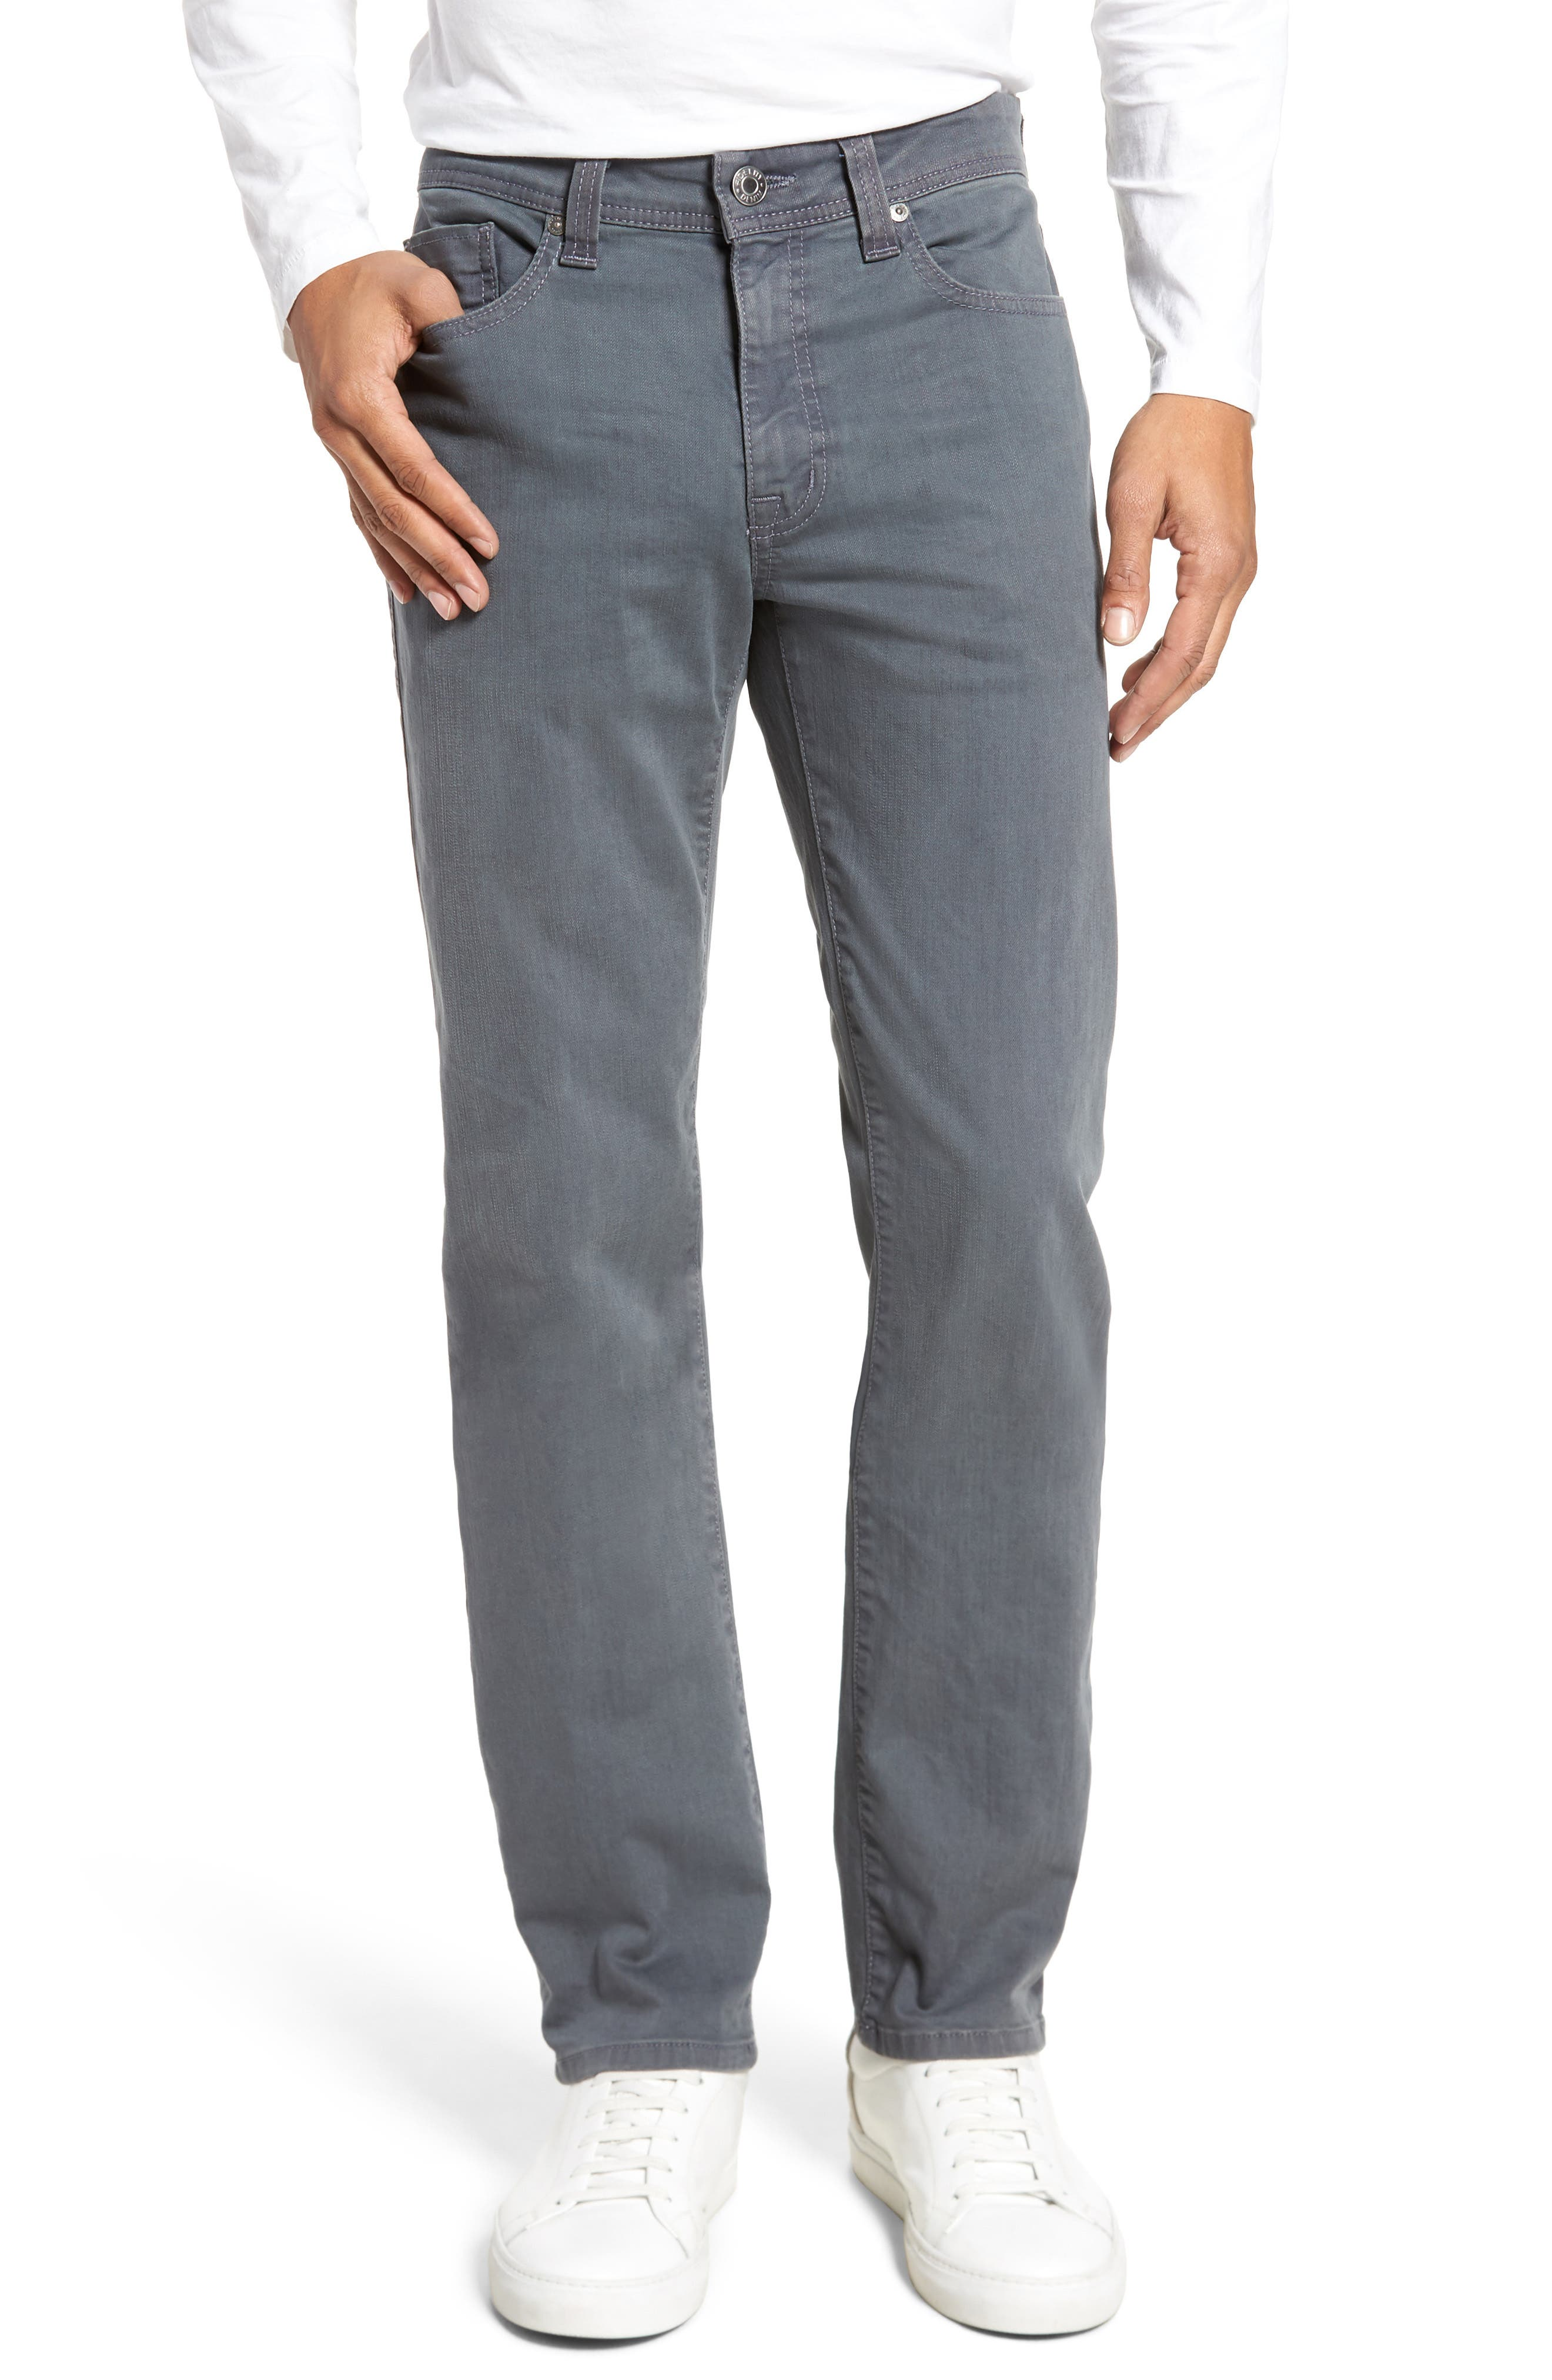 Jimmy Slim Straight Fit Jeans,                         Main,                         color, Oyster